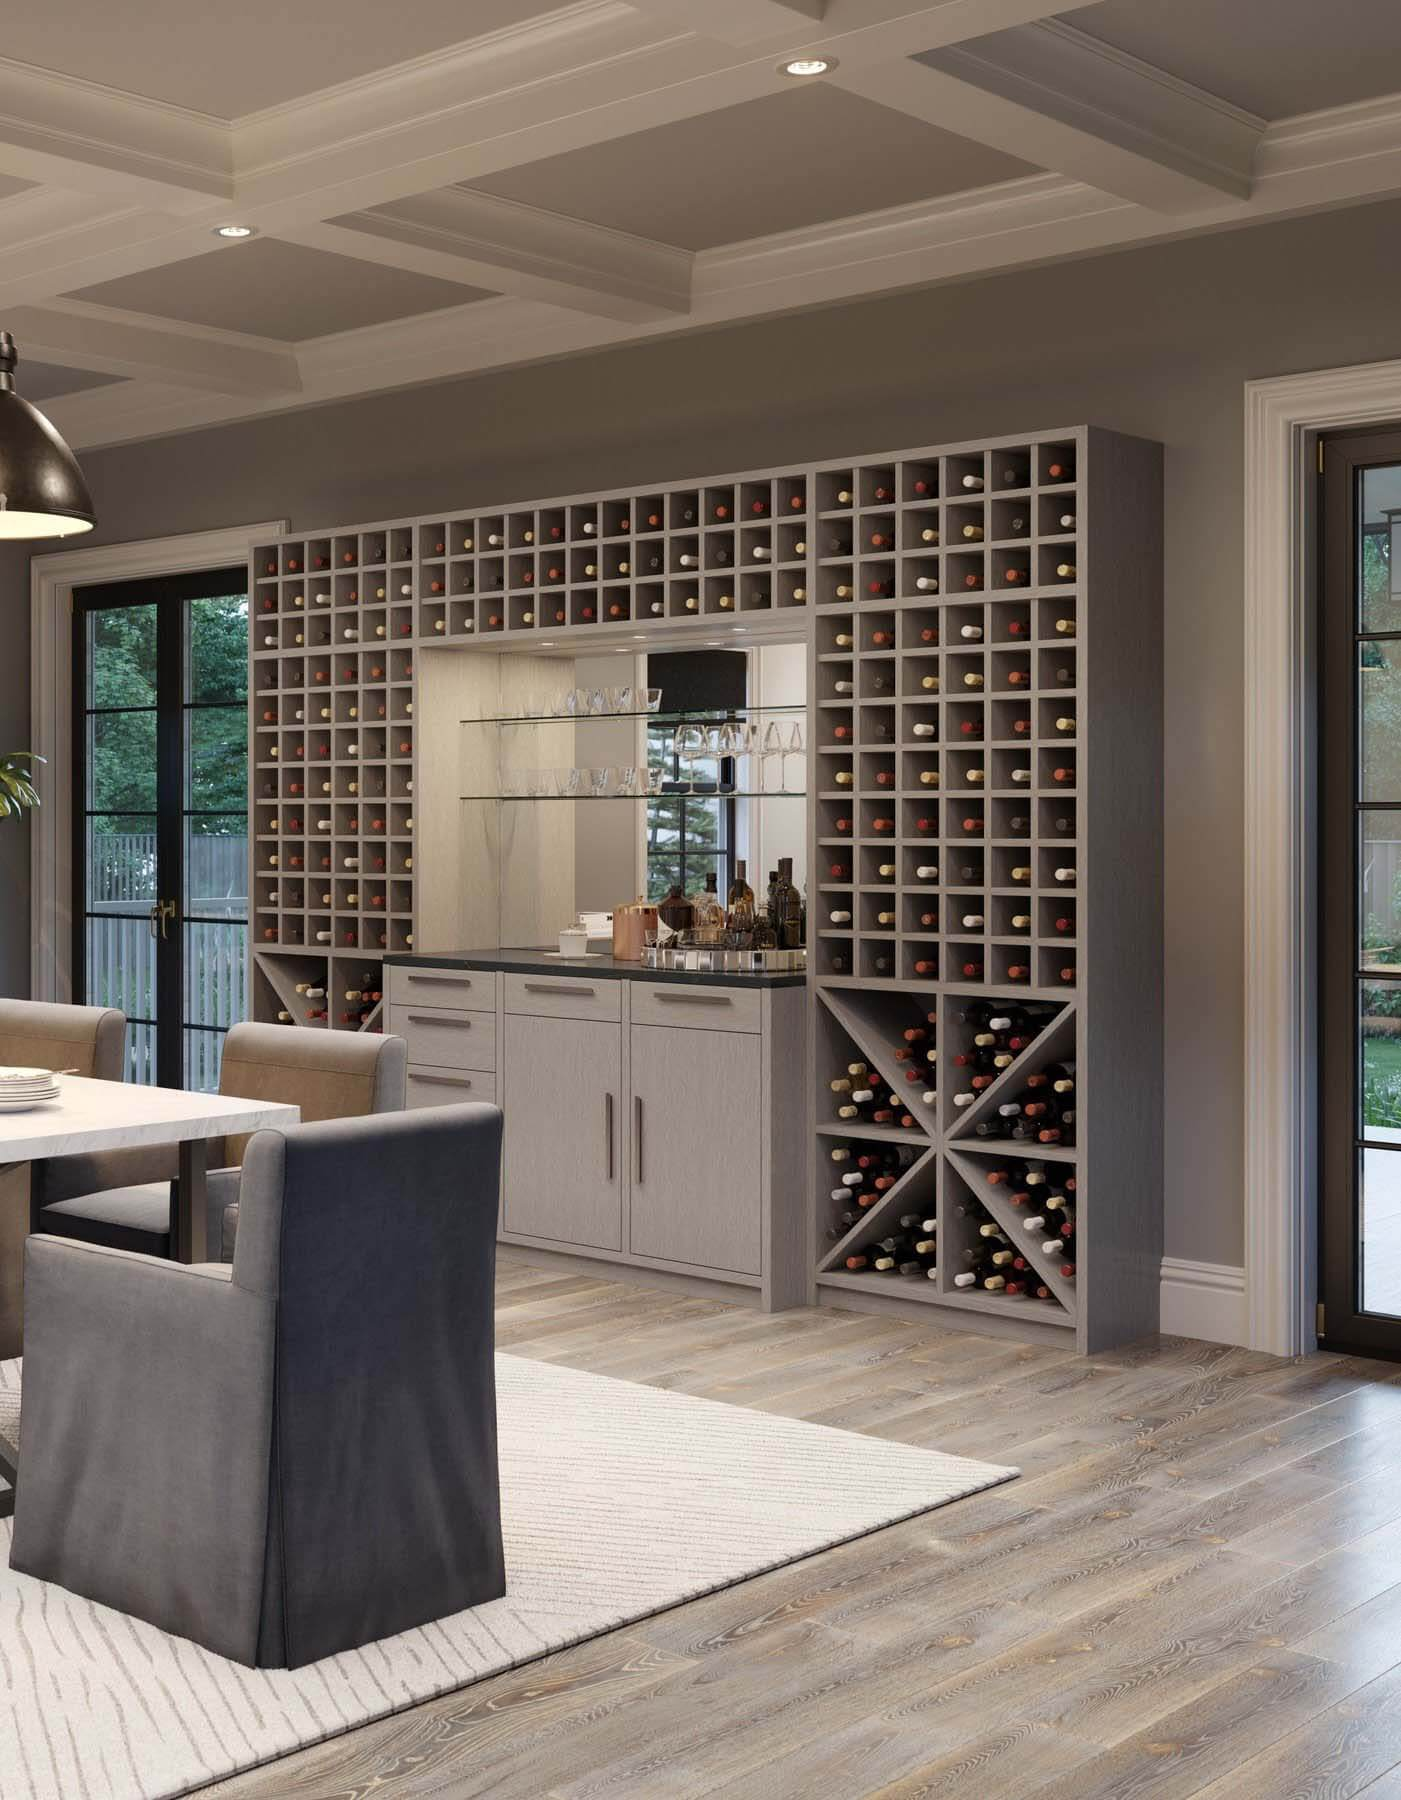 Wine wall by California Closets